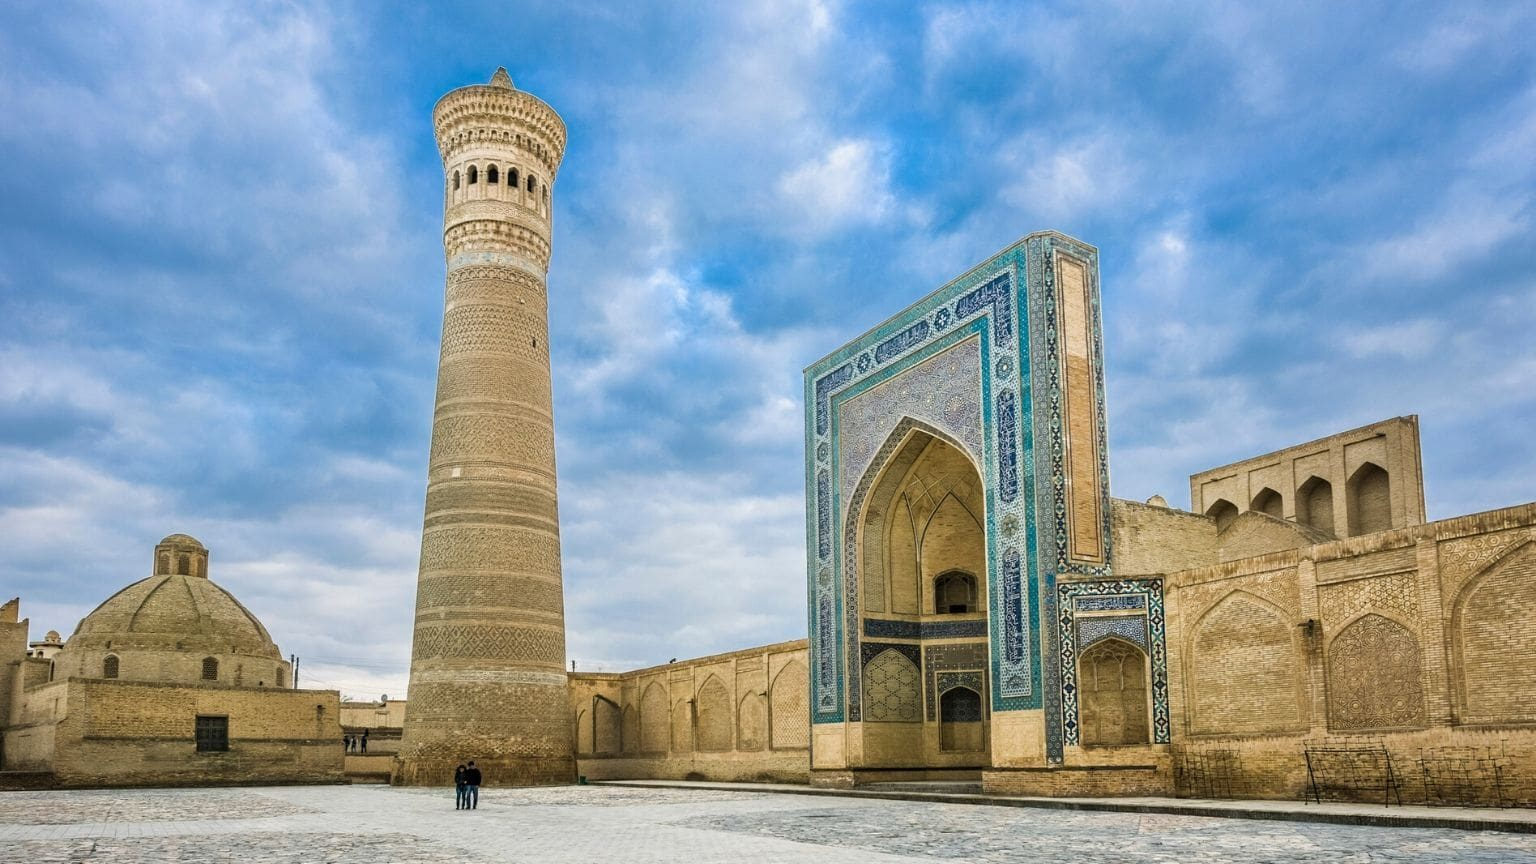 Kalon mosque and minaret in Bukhara, Central Asia